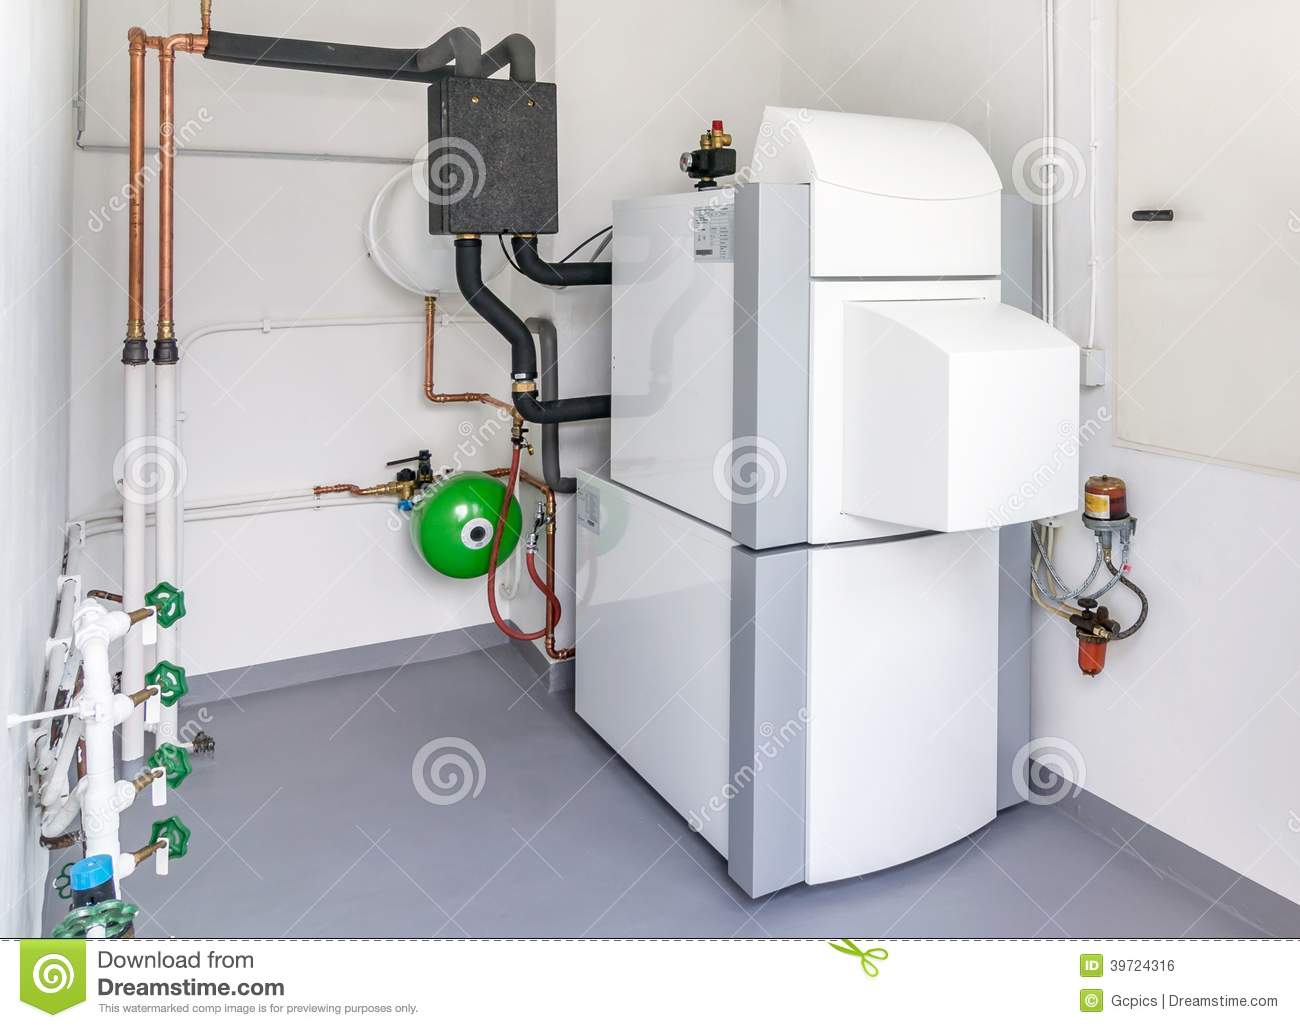 A Boiler Room With Heating System Stock Photo Image